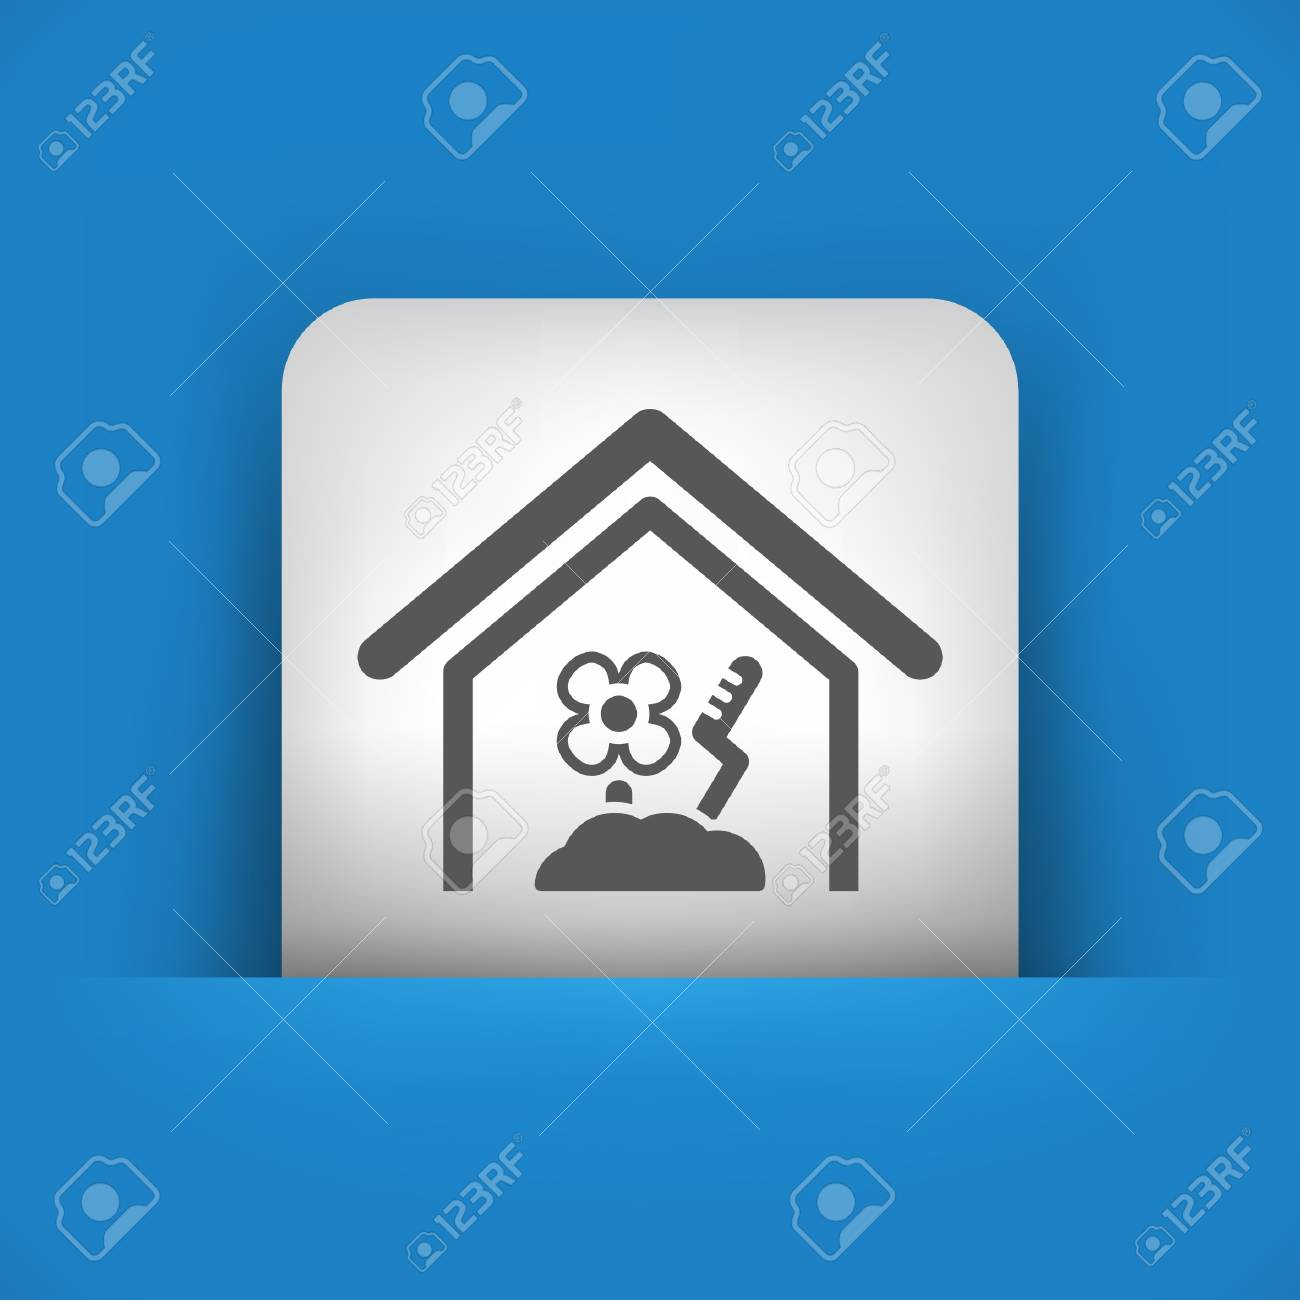 Vector illustration of single blue and gray isolated icon. Stock Vector - 17783276